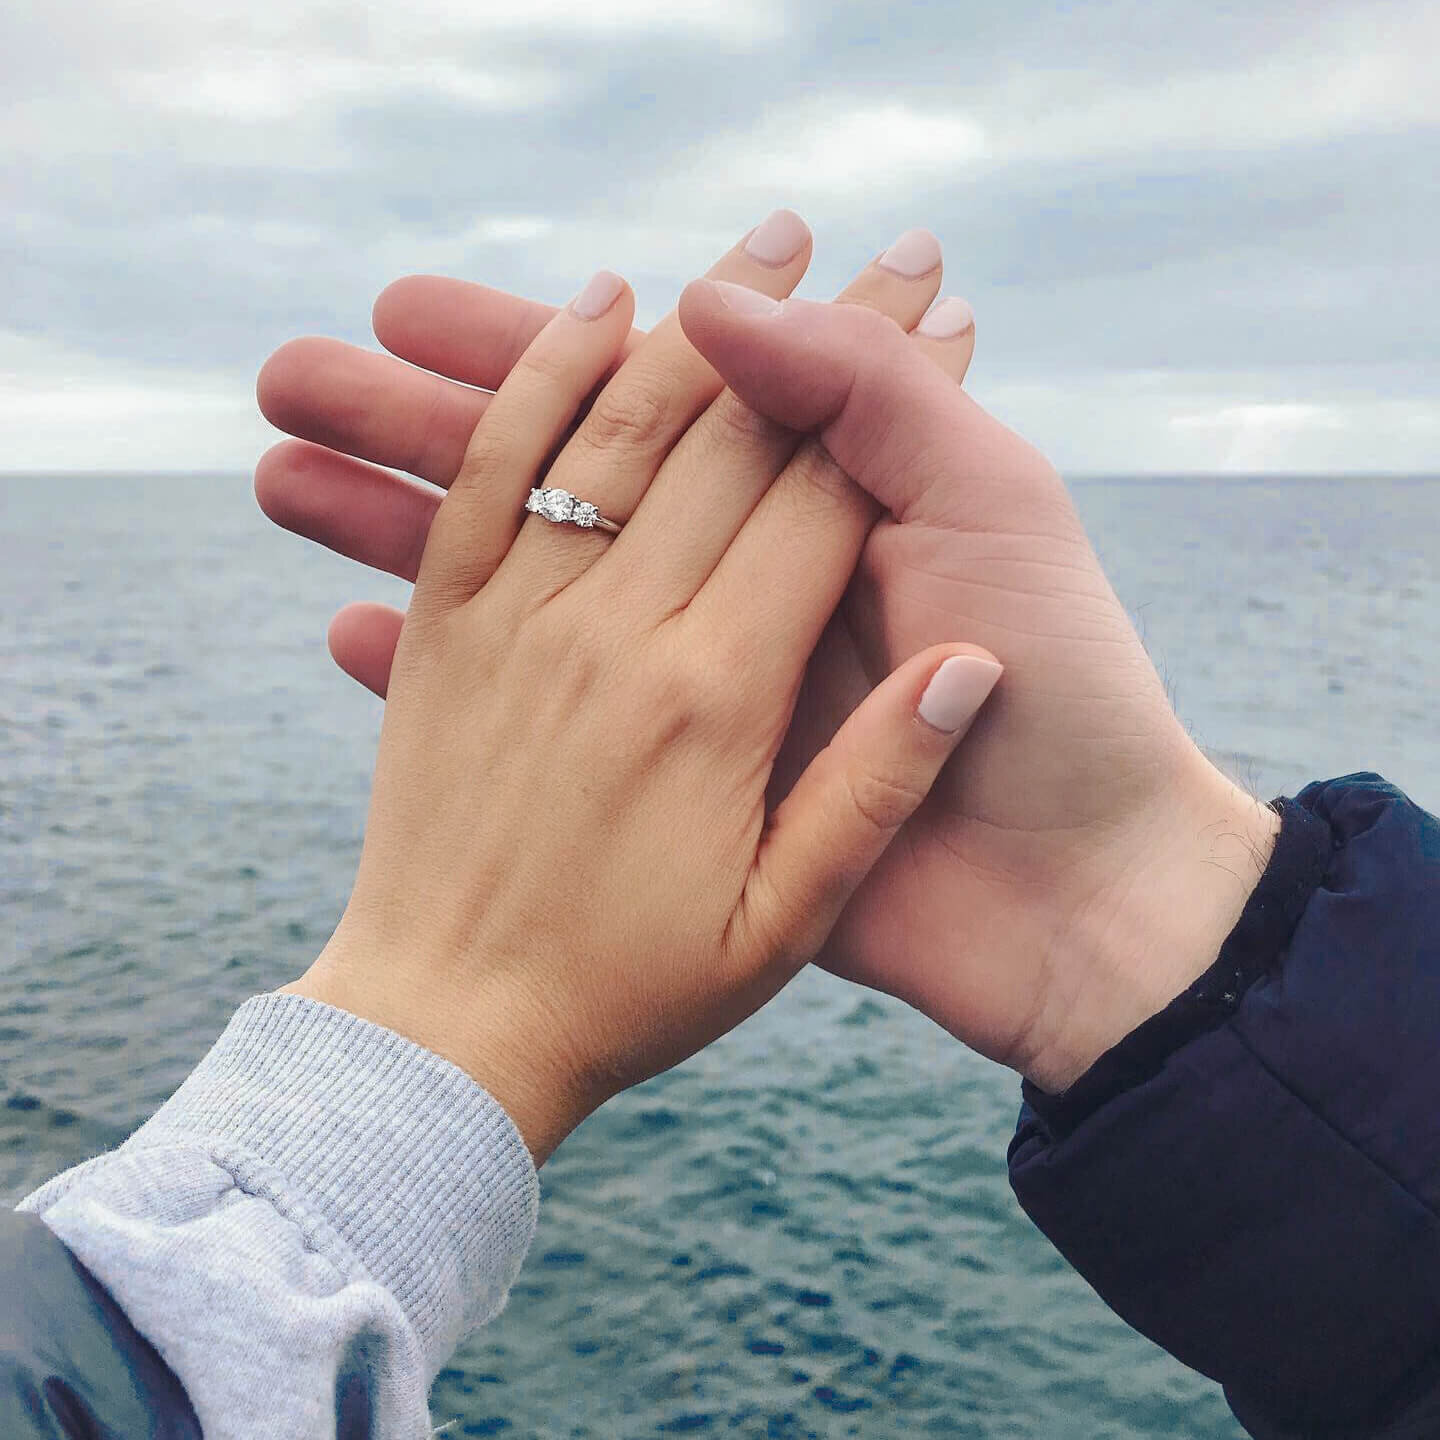 amazing-proposal-video-on-isle-of-sky-and-engagement-ring-queensmith-master-jewellers-london-2.jpg